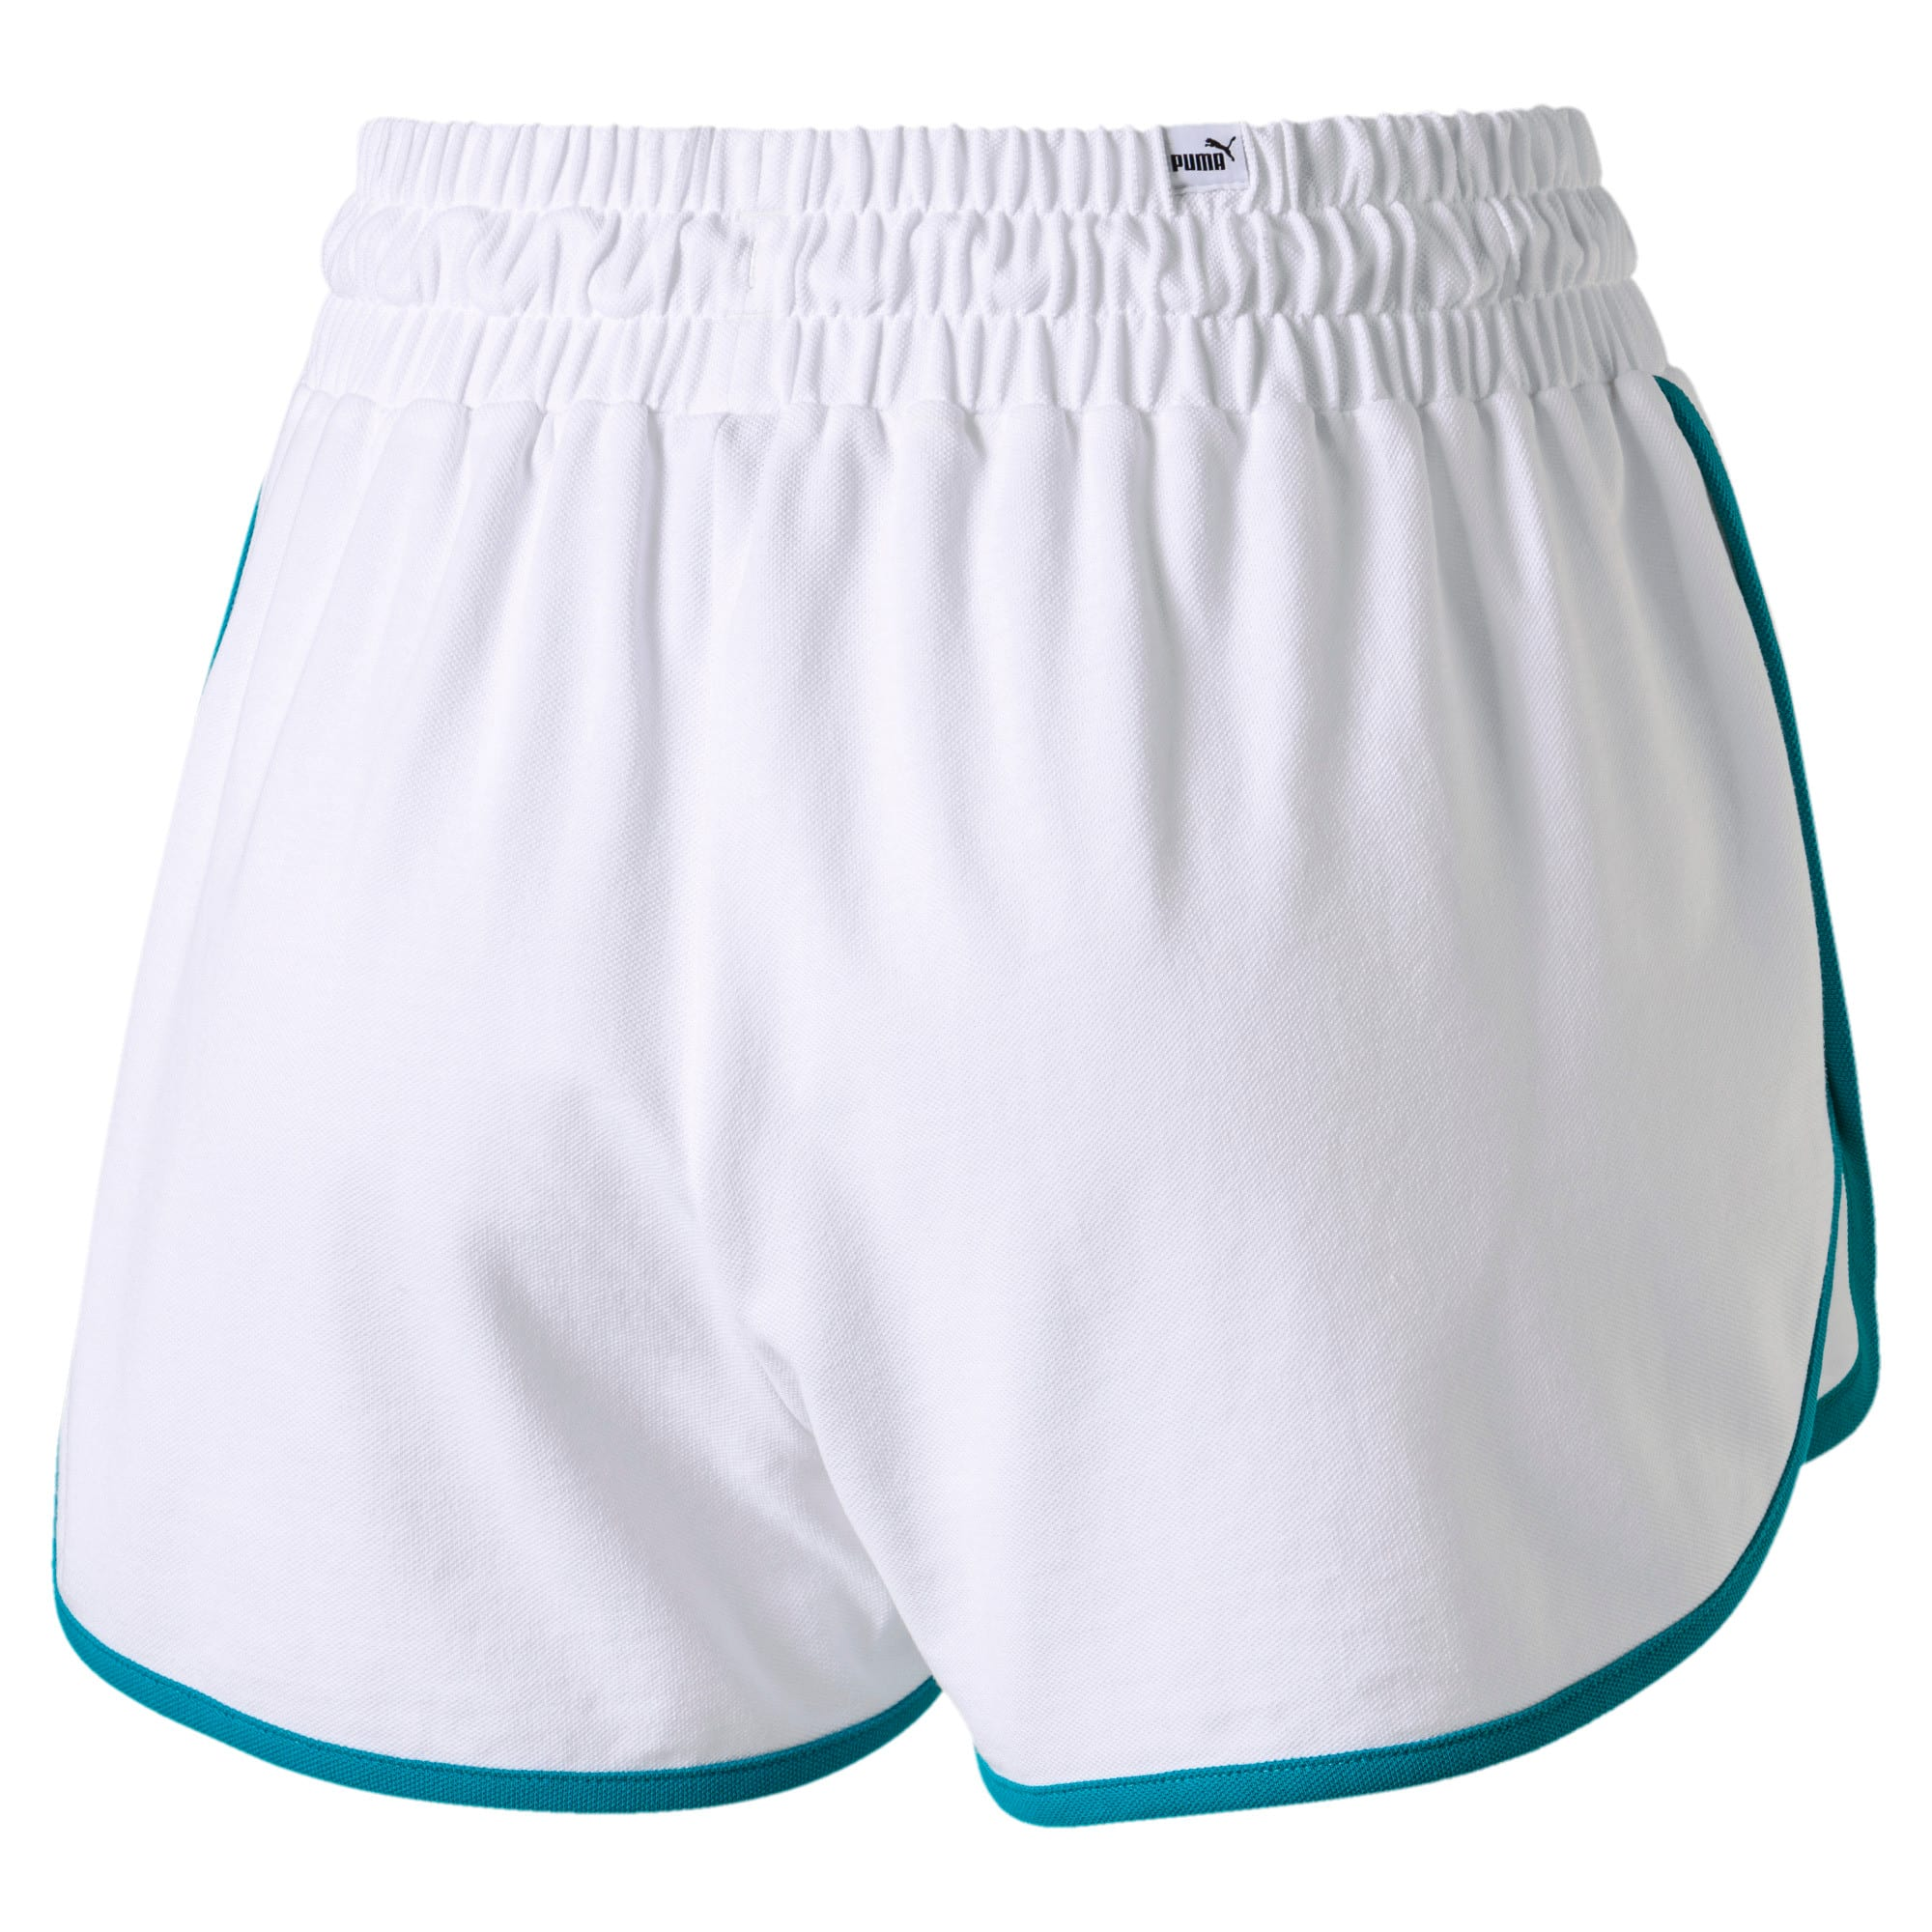 Thumbnail 3 of Women's Summer Shorts, Puma White, medium